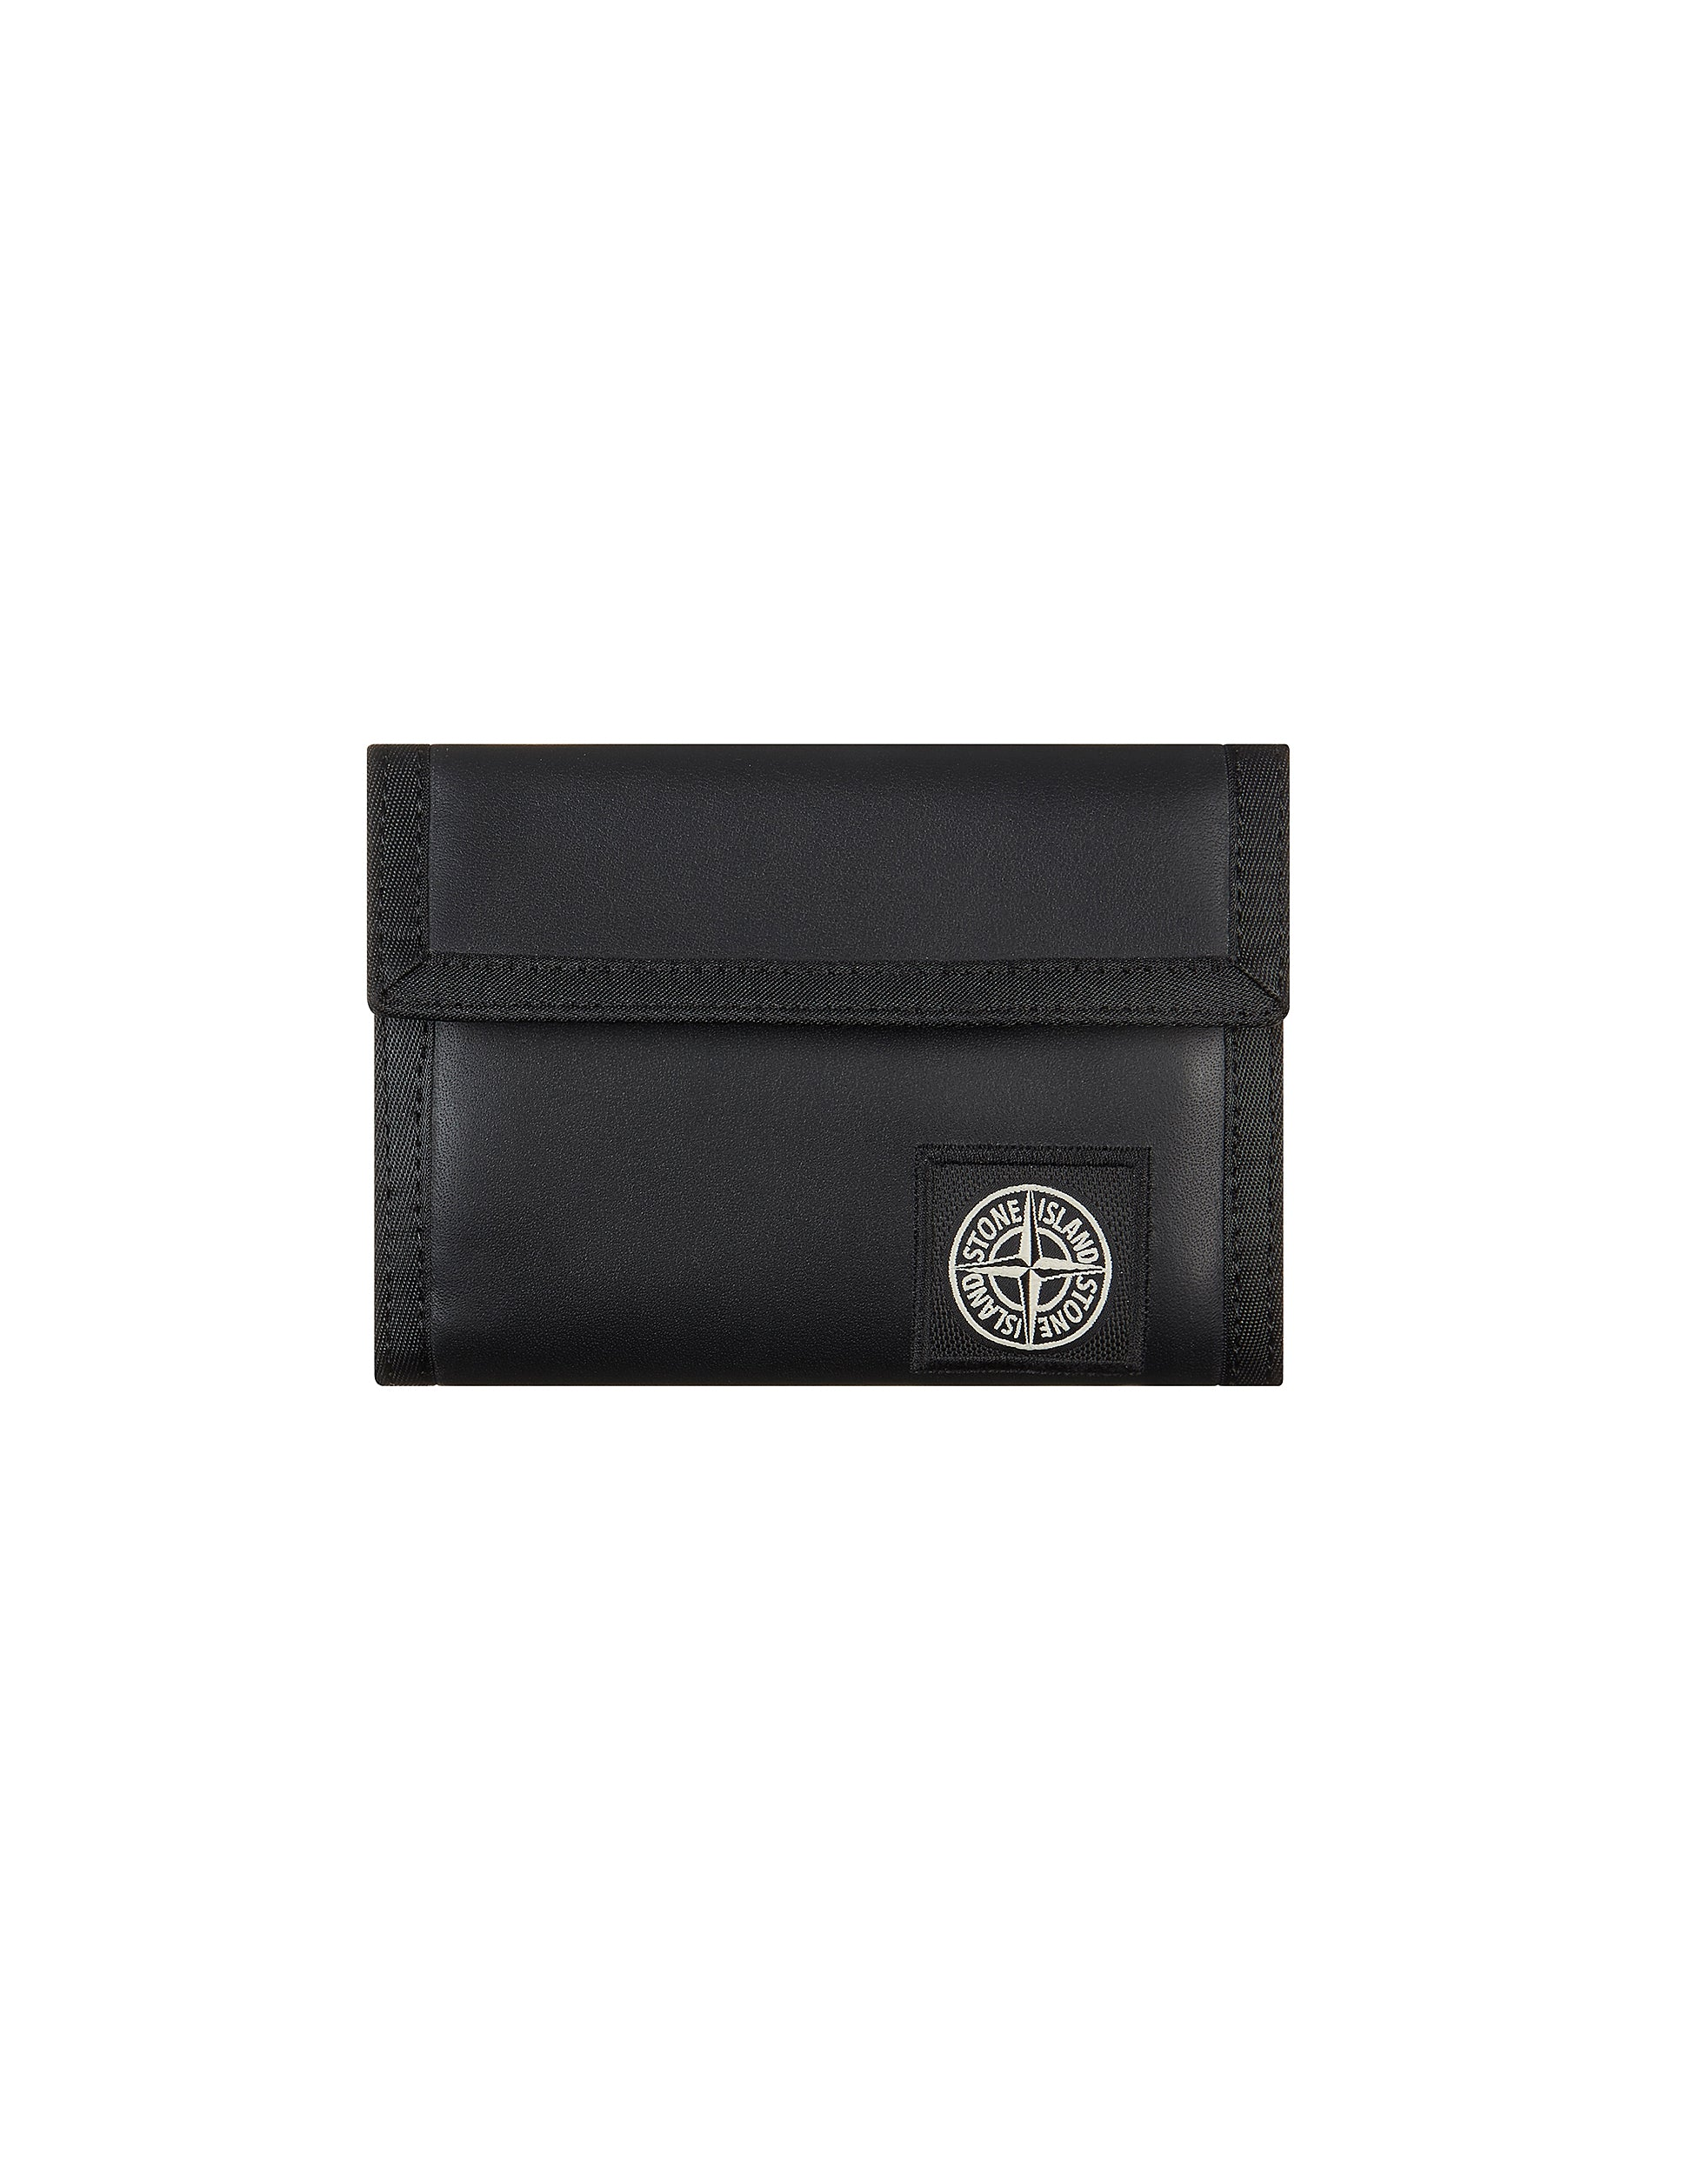 90879 Leather Bi-Fold Wallet in Black